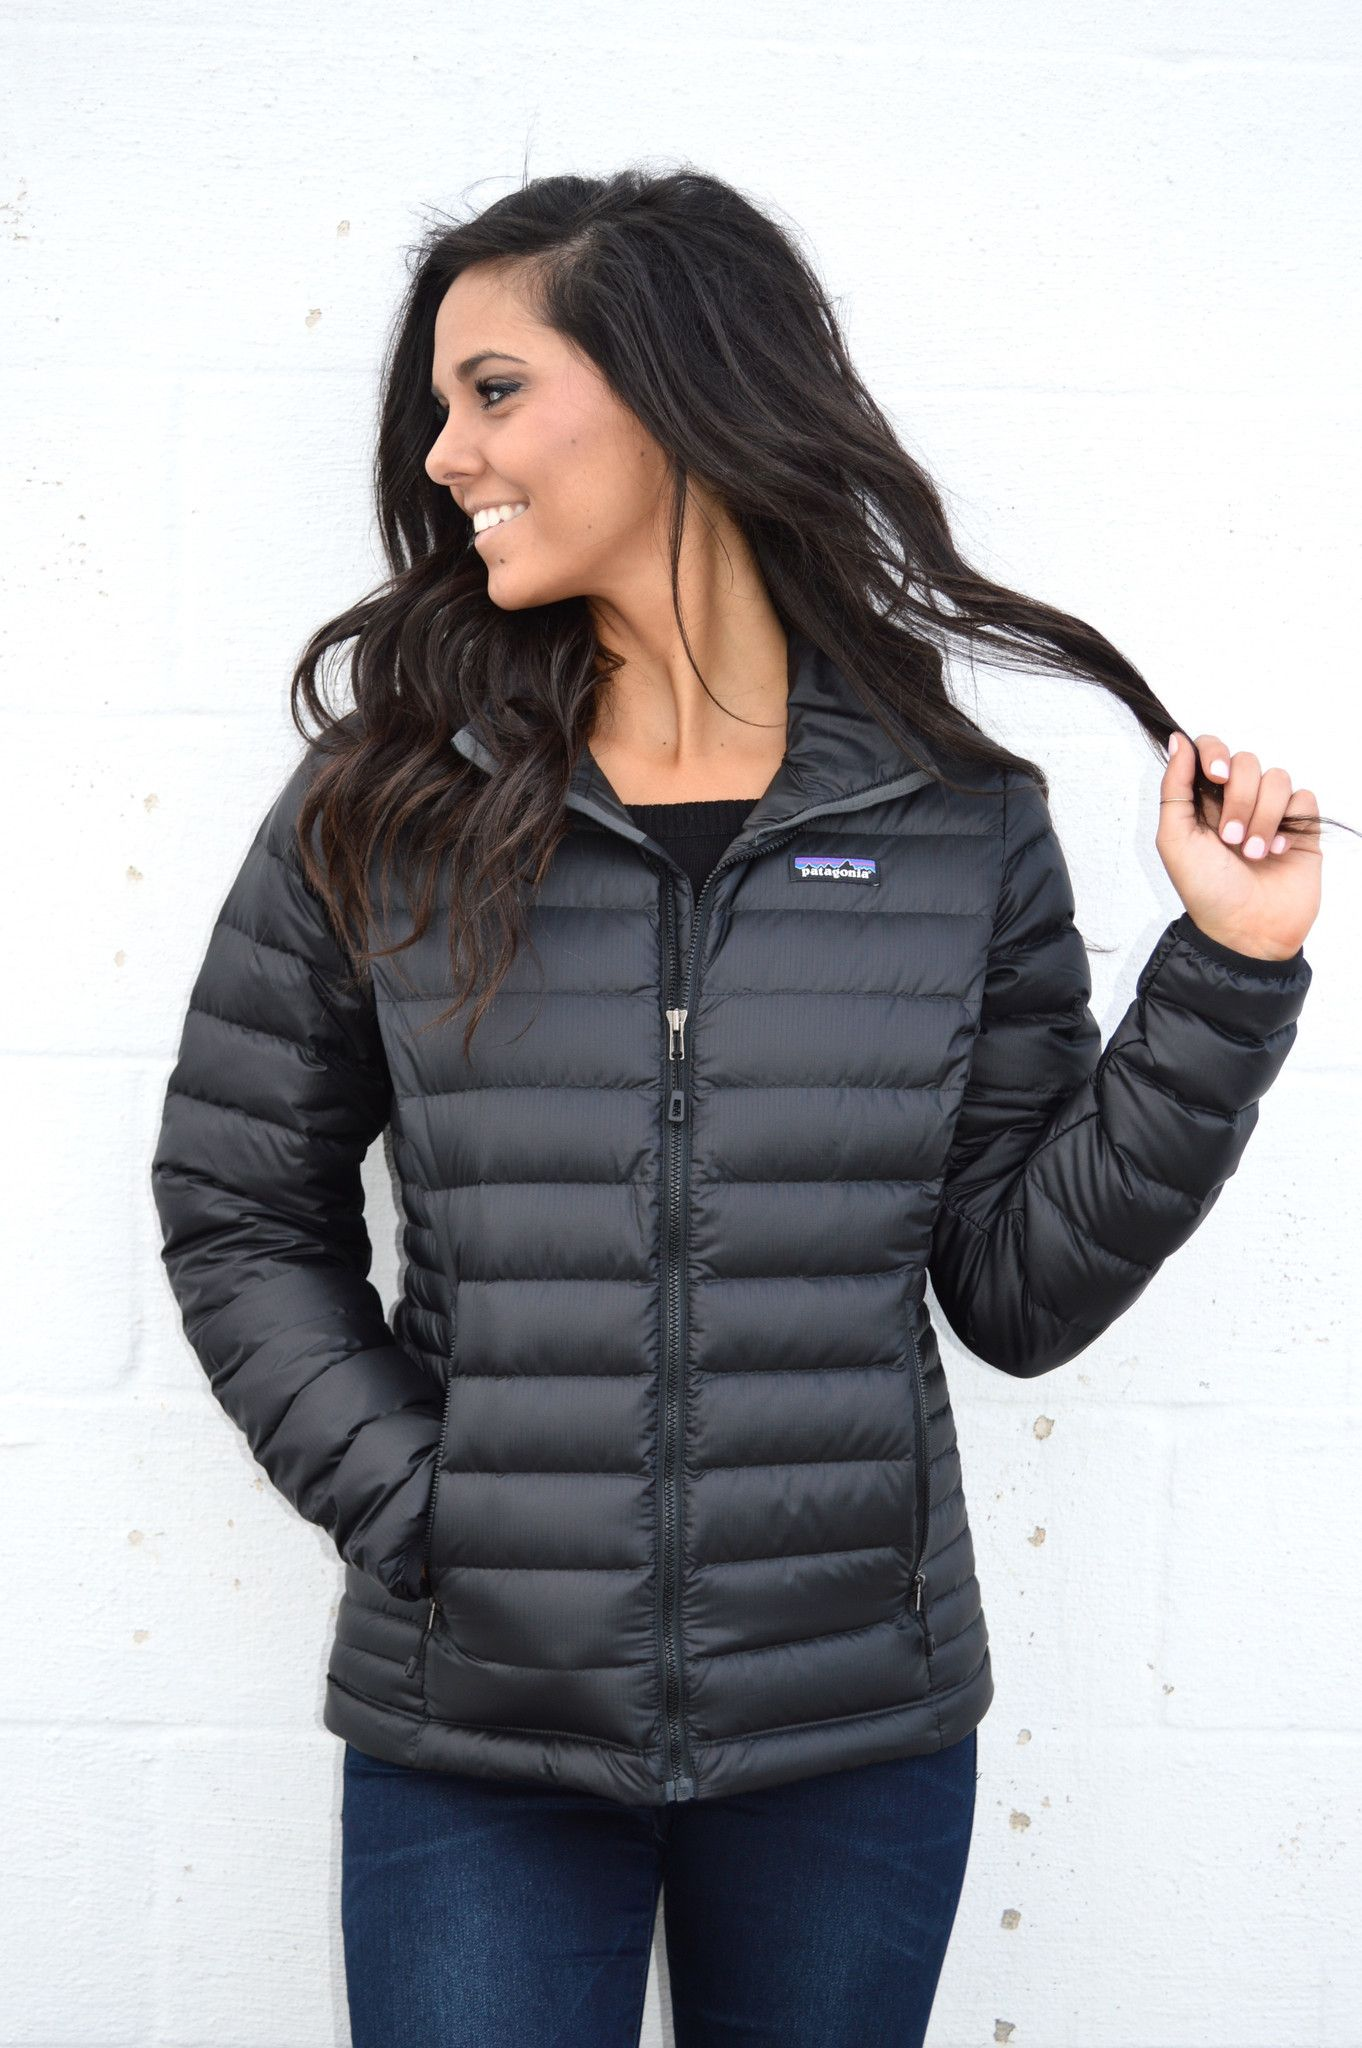 Patagonia Women's Down Sweater Jacket Black from Shop